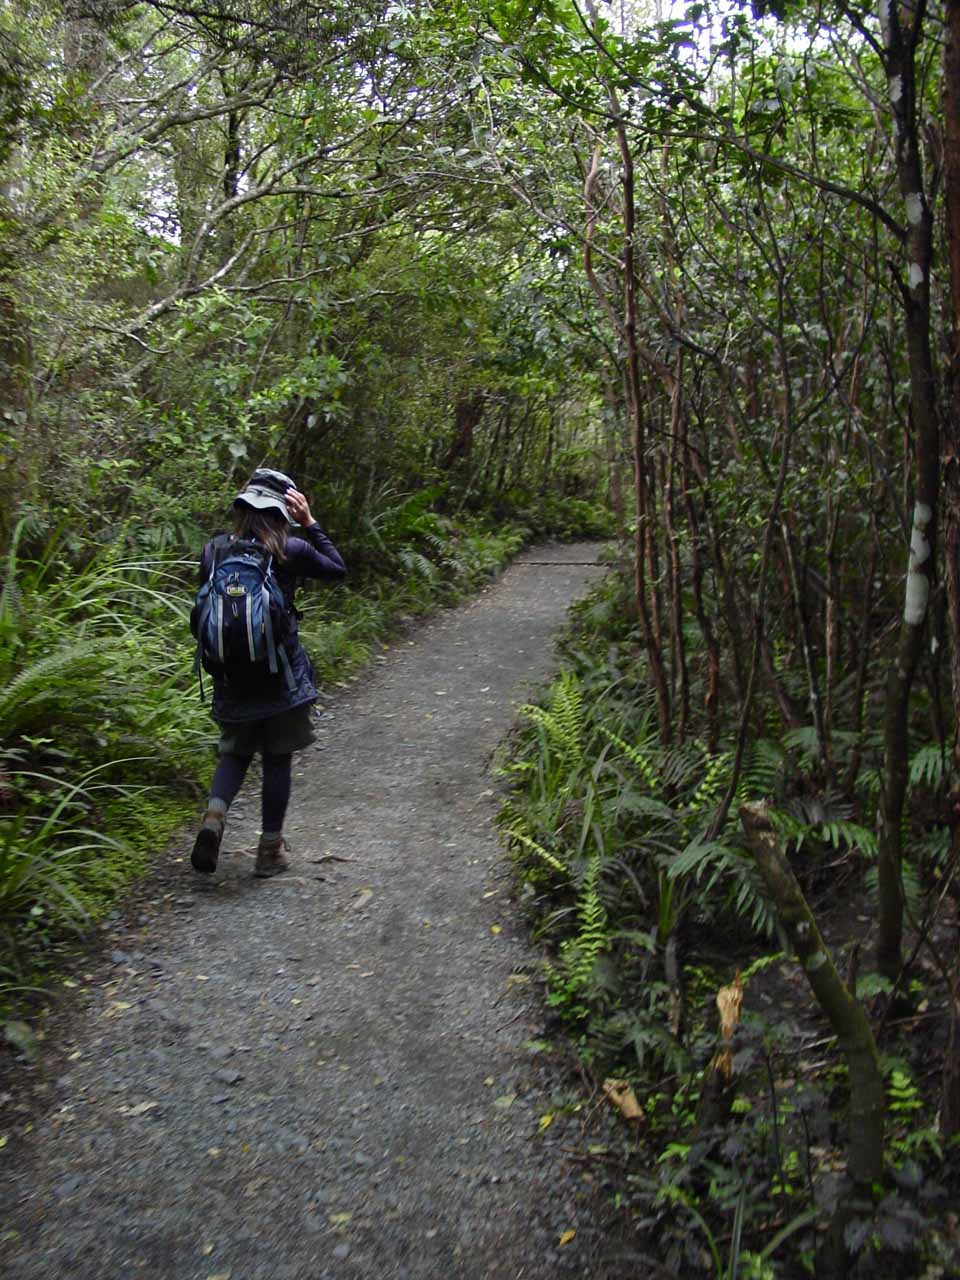 Julie continuing on amidst the lush and dense bush at the tail end of the Tongariro Crossing